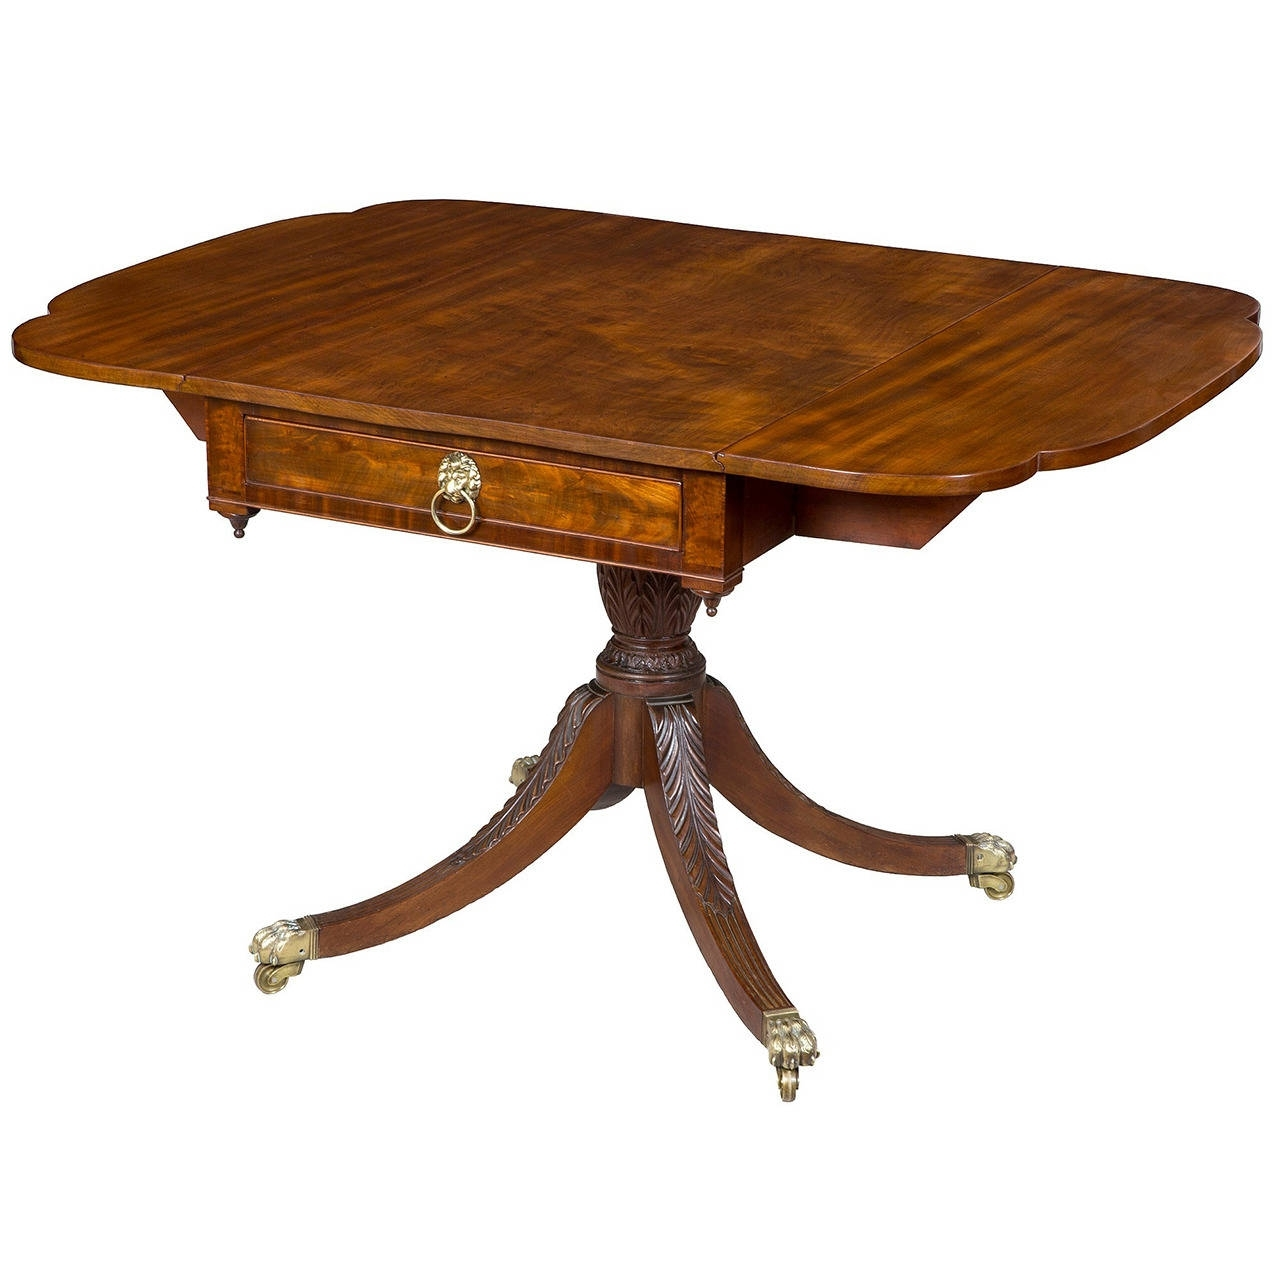 New York Dining Tables Inside Best And Newest Sheraton Mahogany Dining Table, New York, Circa 1810 For Sale At 1Stdibs (View 24 of 25)